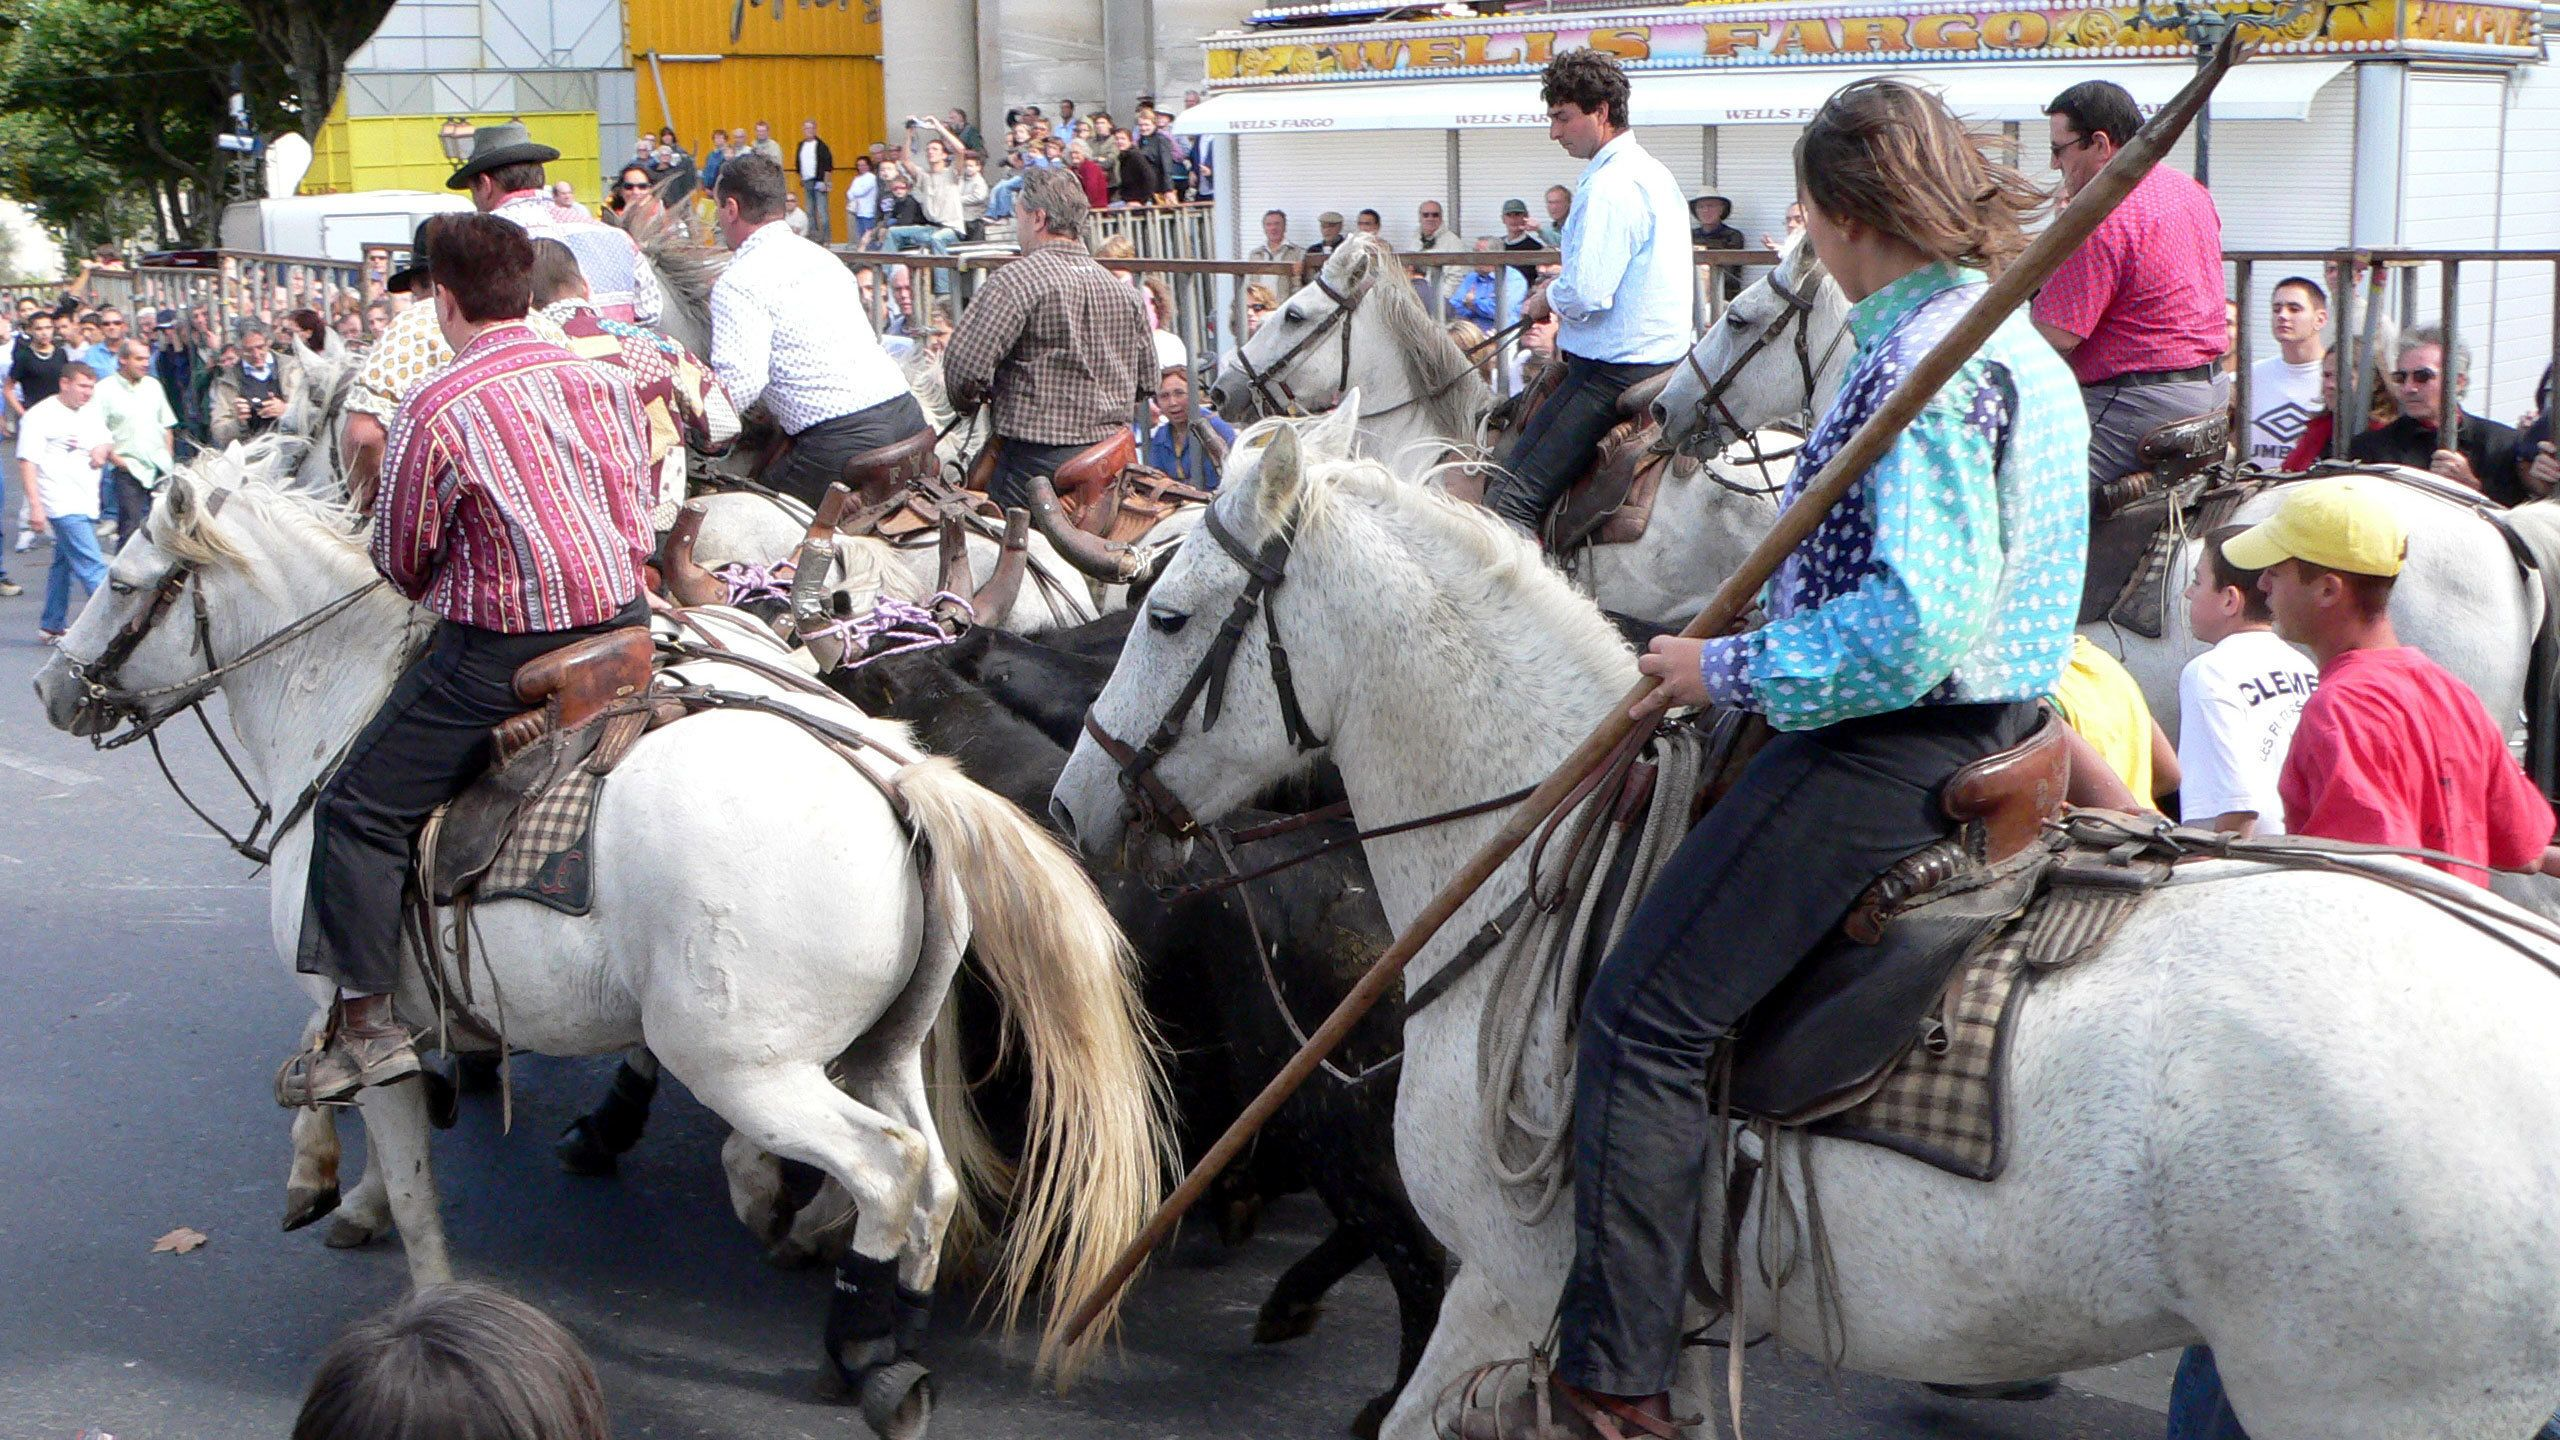 group on horseback on the road in France